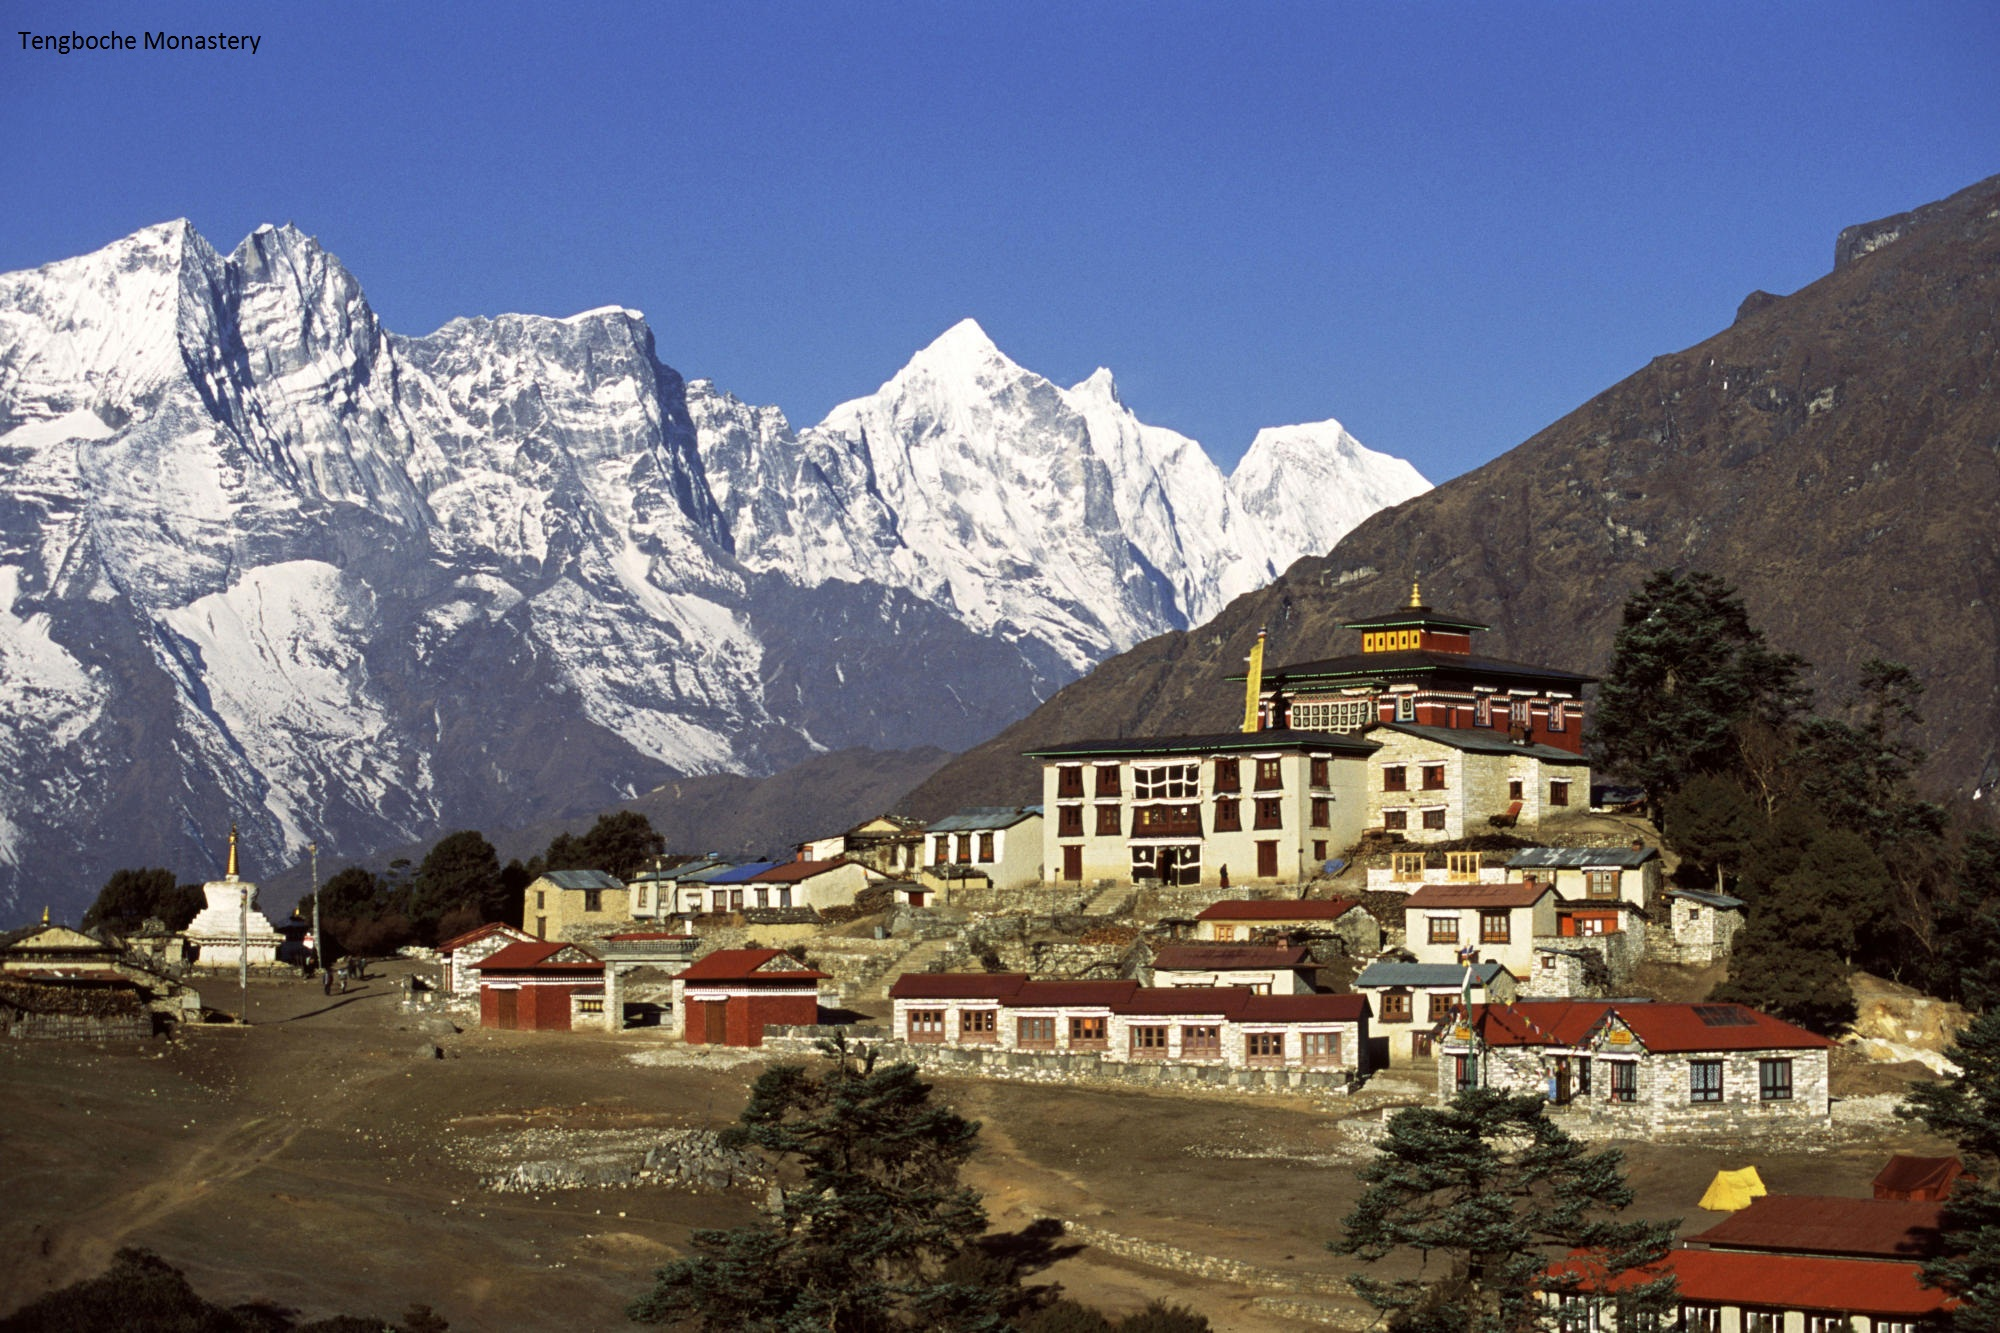 Tengboche monastery in the Solo Khumbu region of Nepal near Mount Everest.